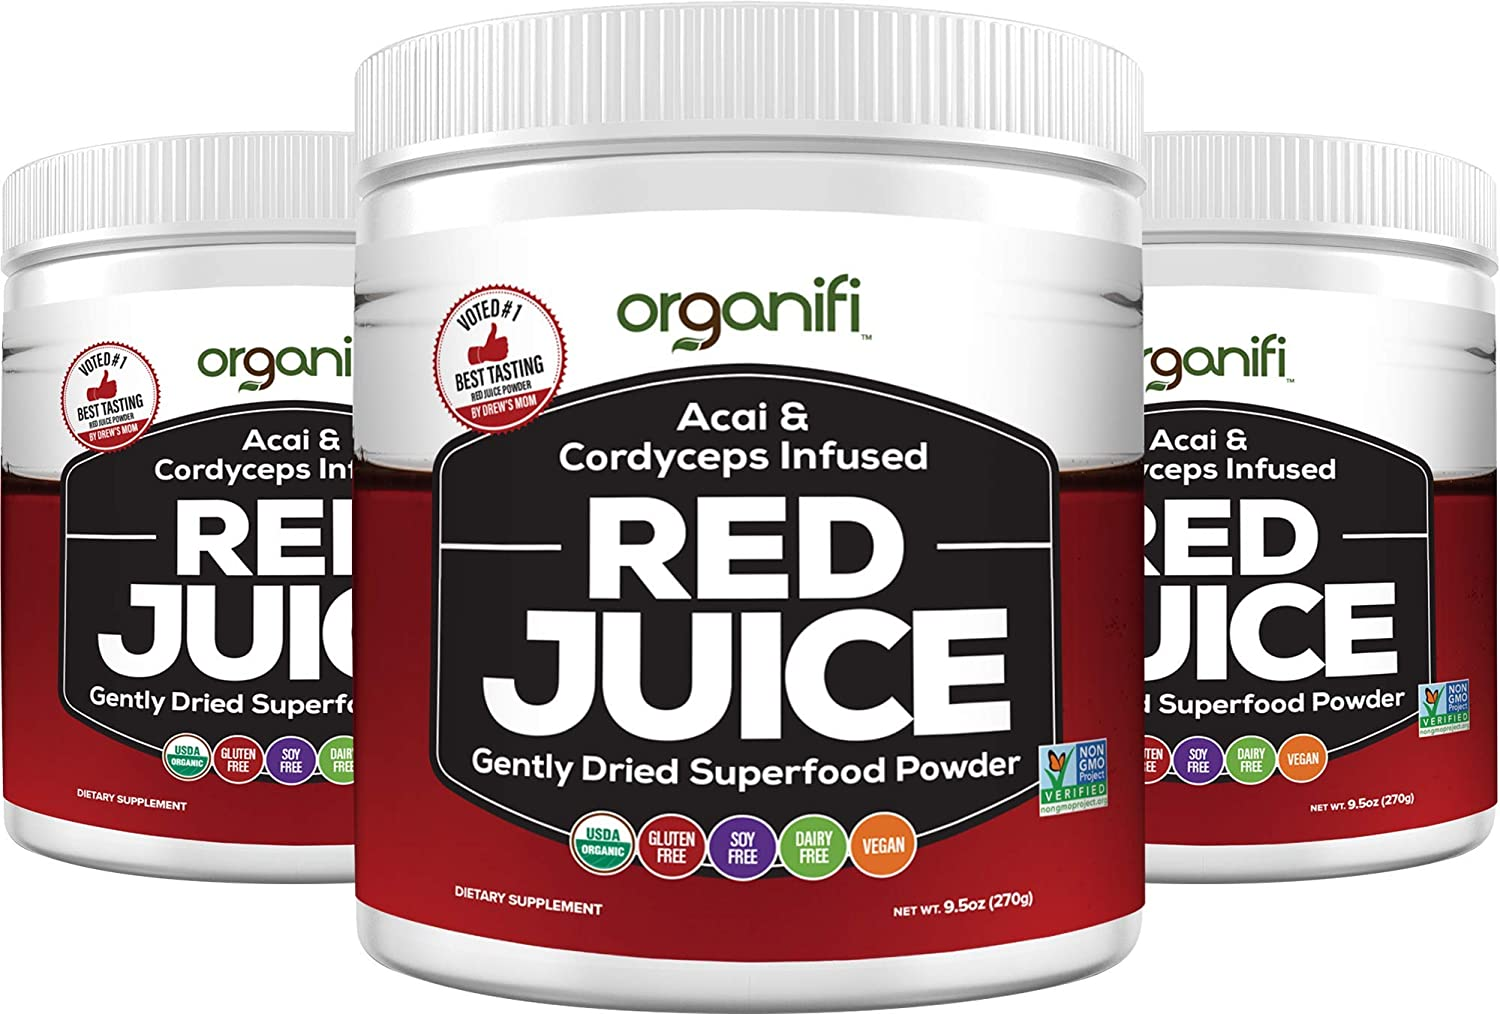 Organifi: Red Juice- Organic Superfood Supplement Powder - 3 Pack - Supports Immunity, Skin Health and Weight Loss Management - Anti-Aging Properties